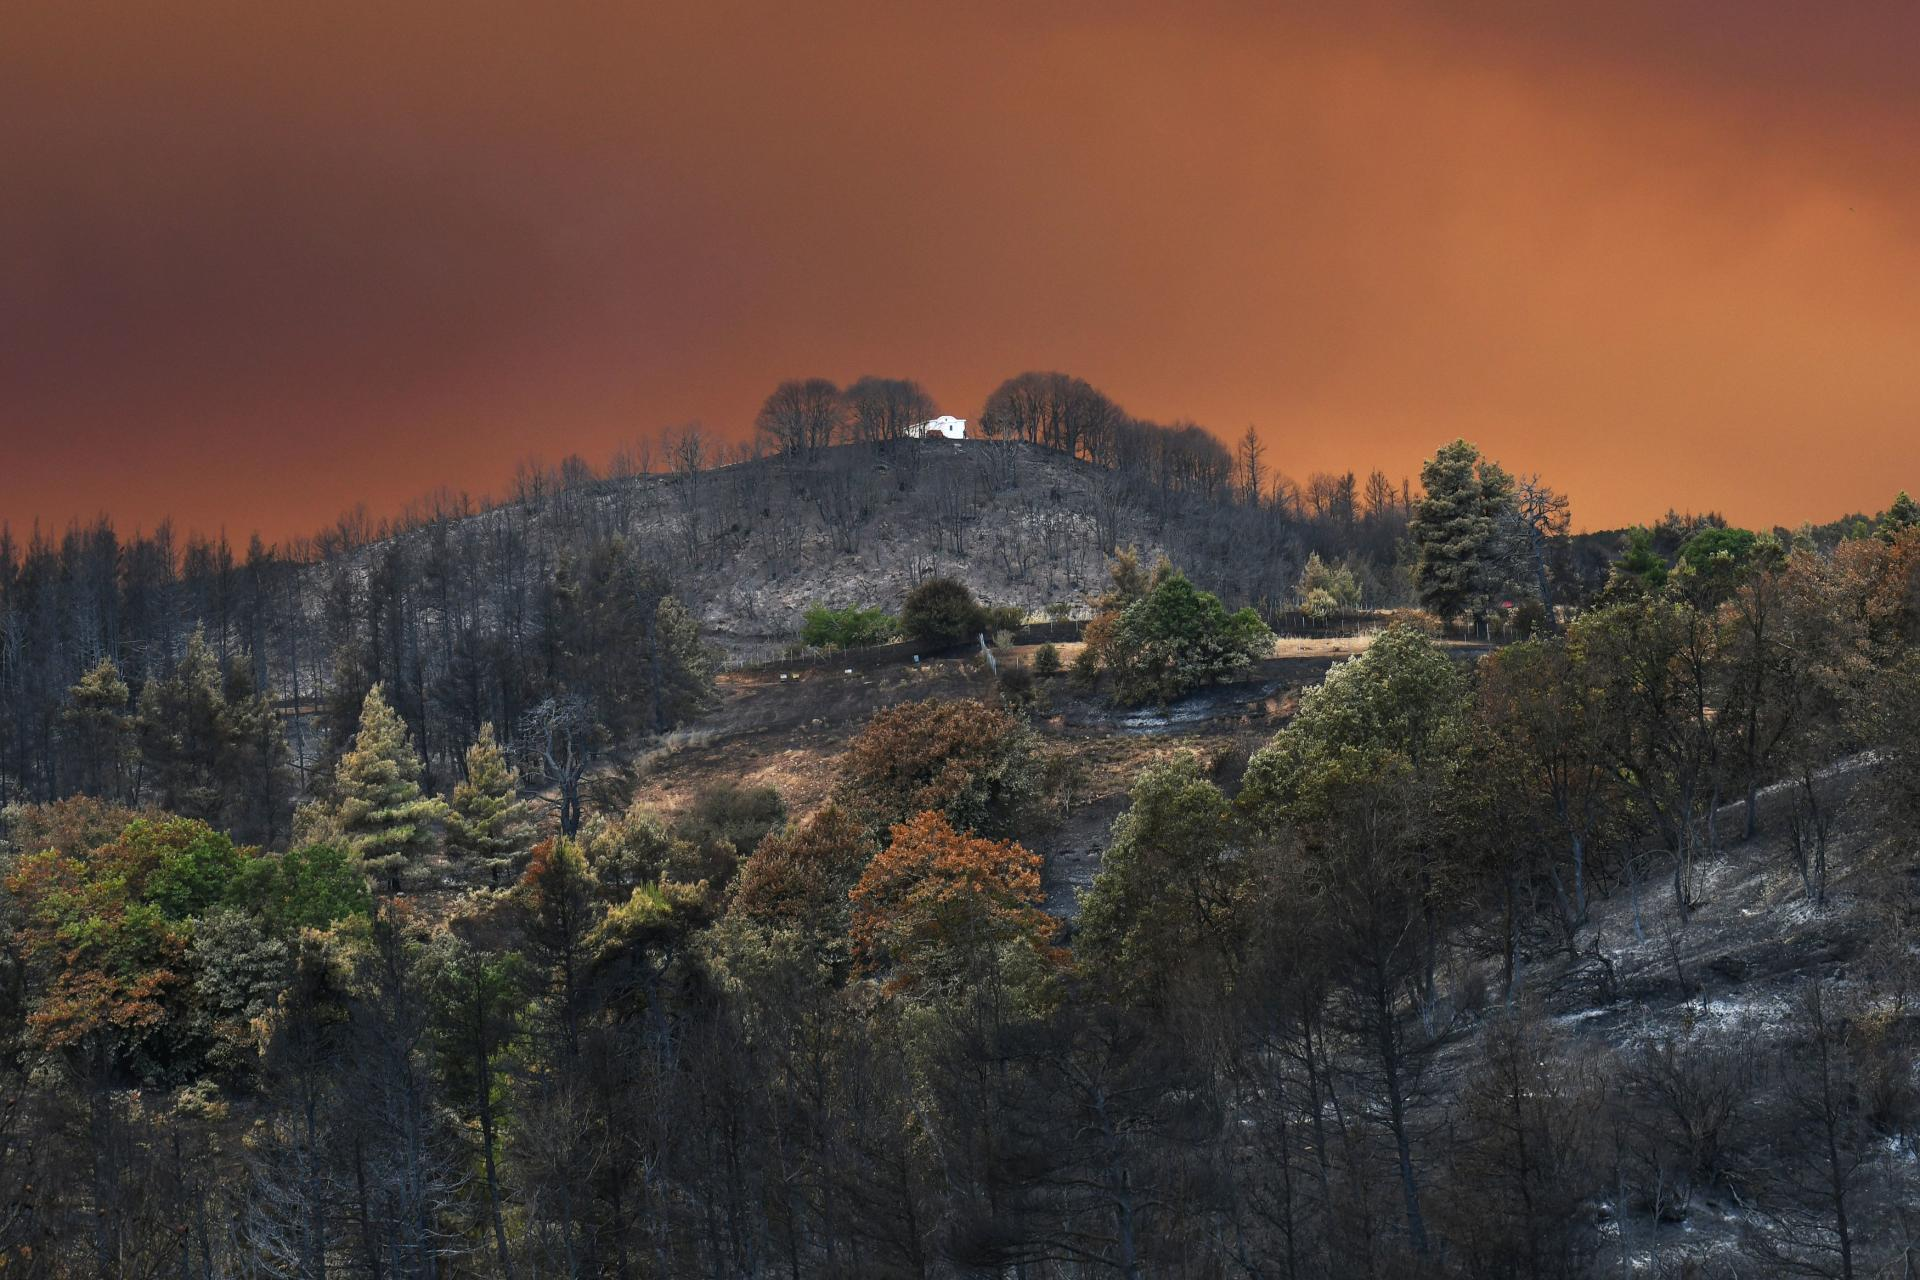 During a fire on the island of Evia, Greece, on August 8, 2021.